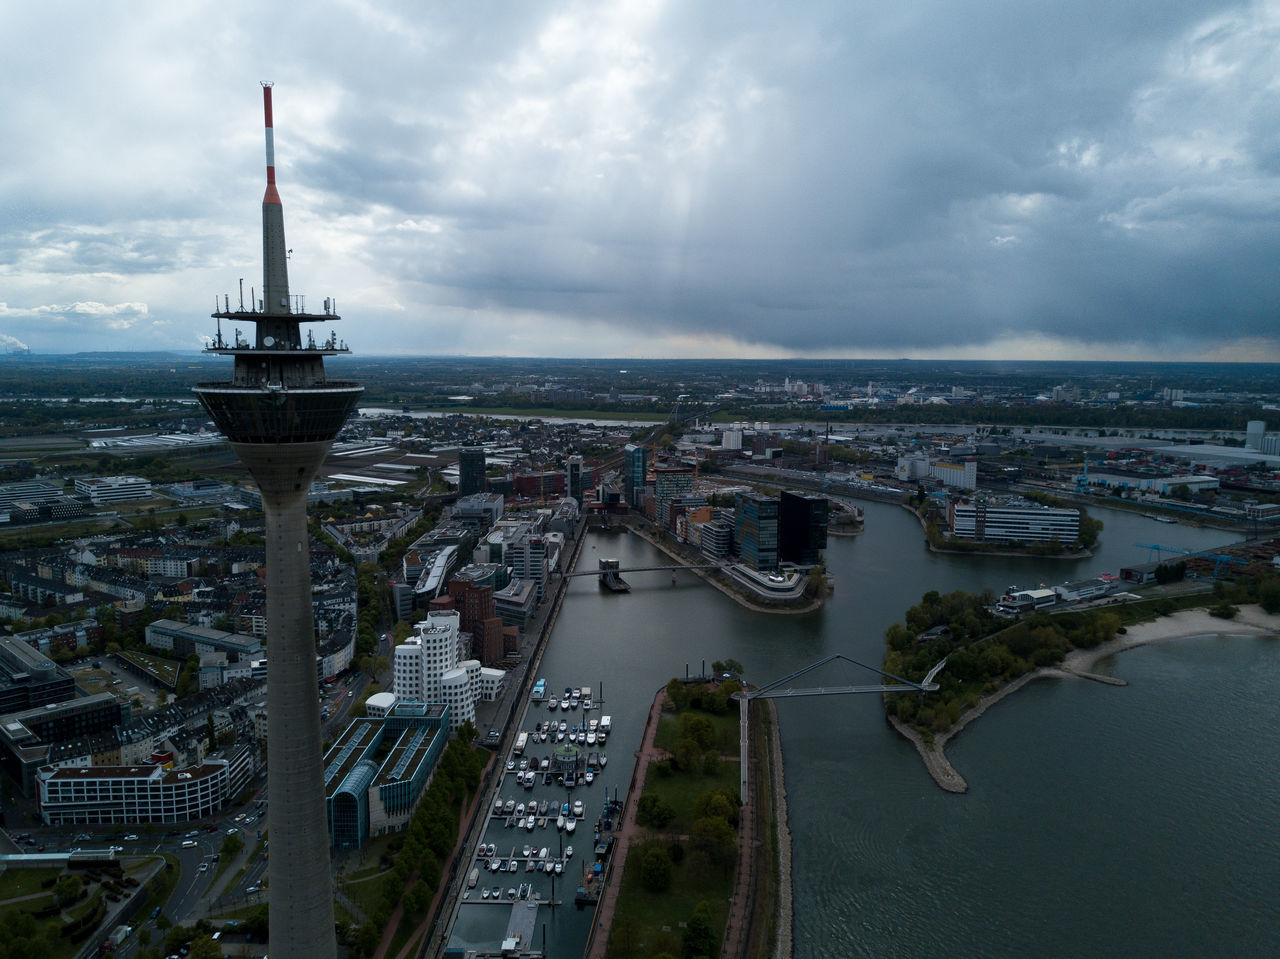 Before the storm sets in Cityscape DJI Mavic Pro Dramatic Dramatic Sky Drone  Dronephotography Germany Rainy Travel TV Tower